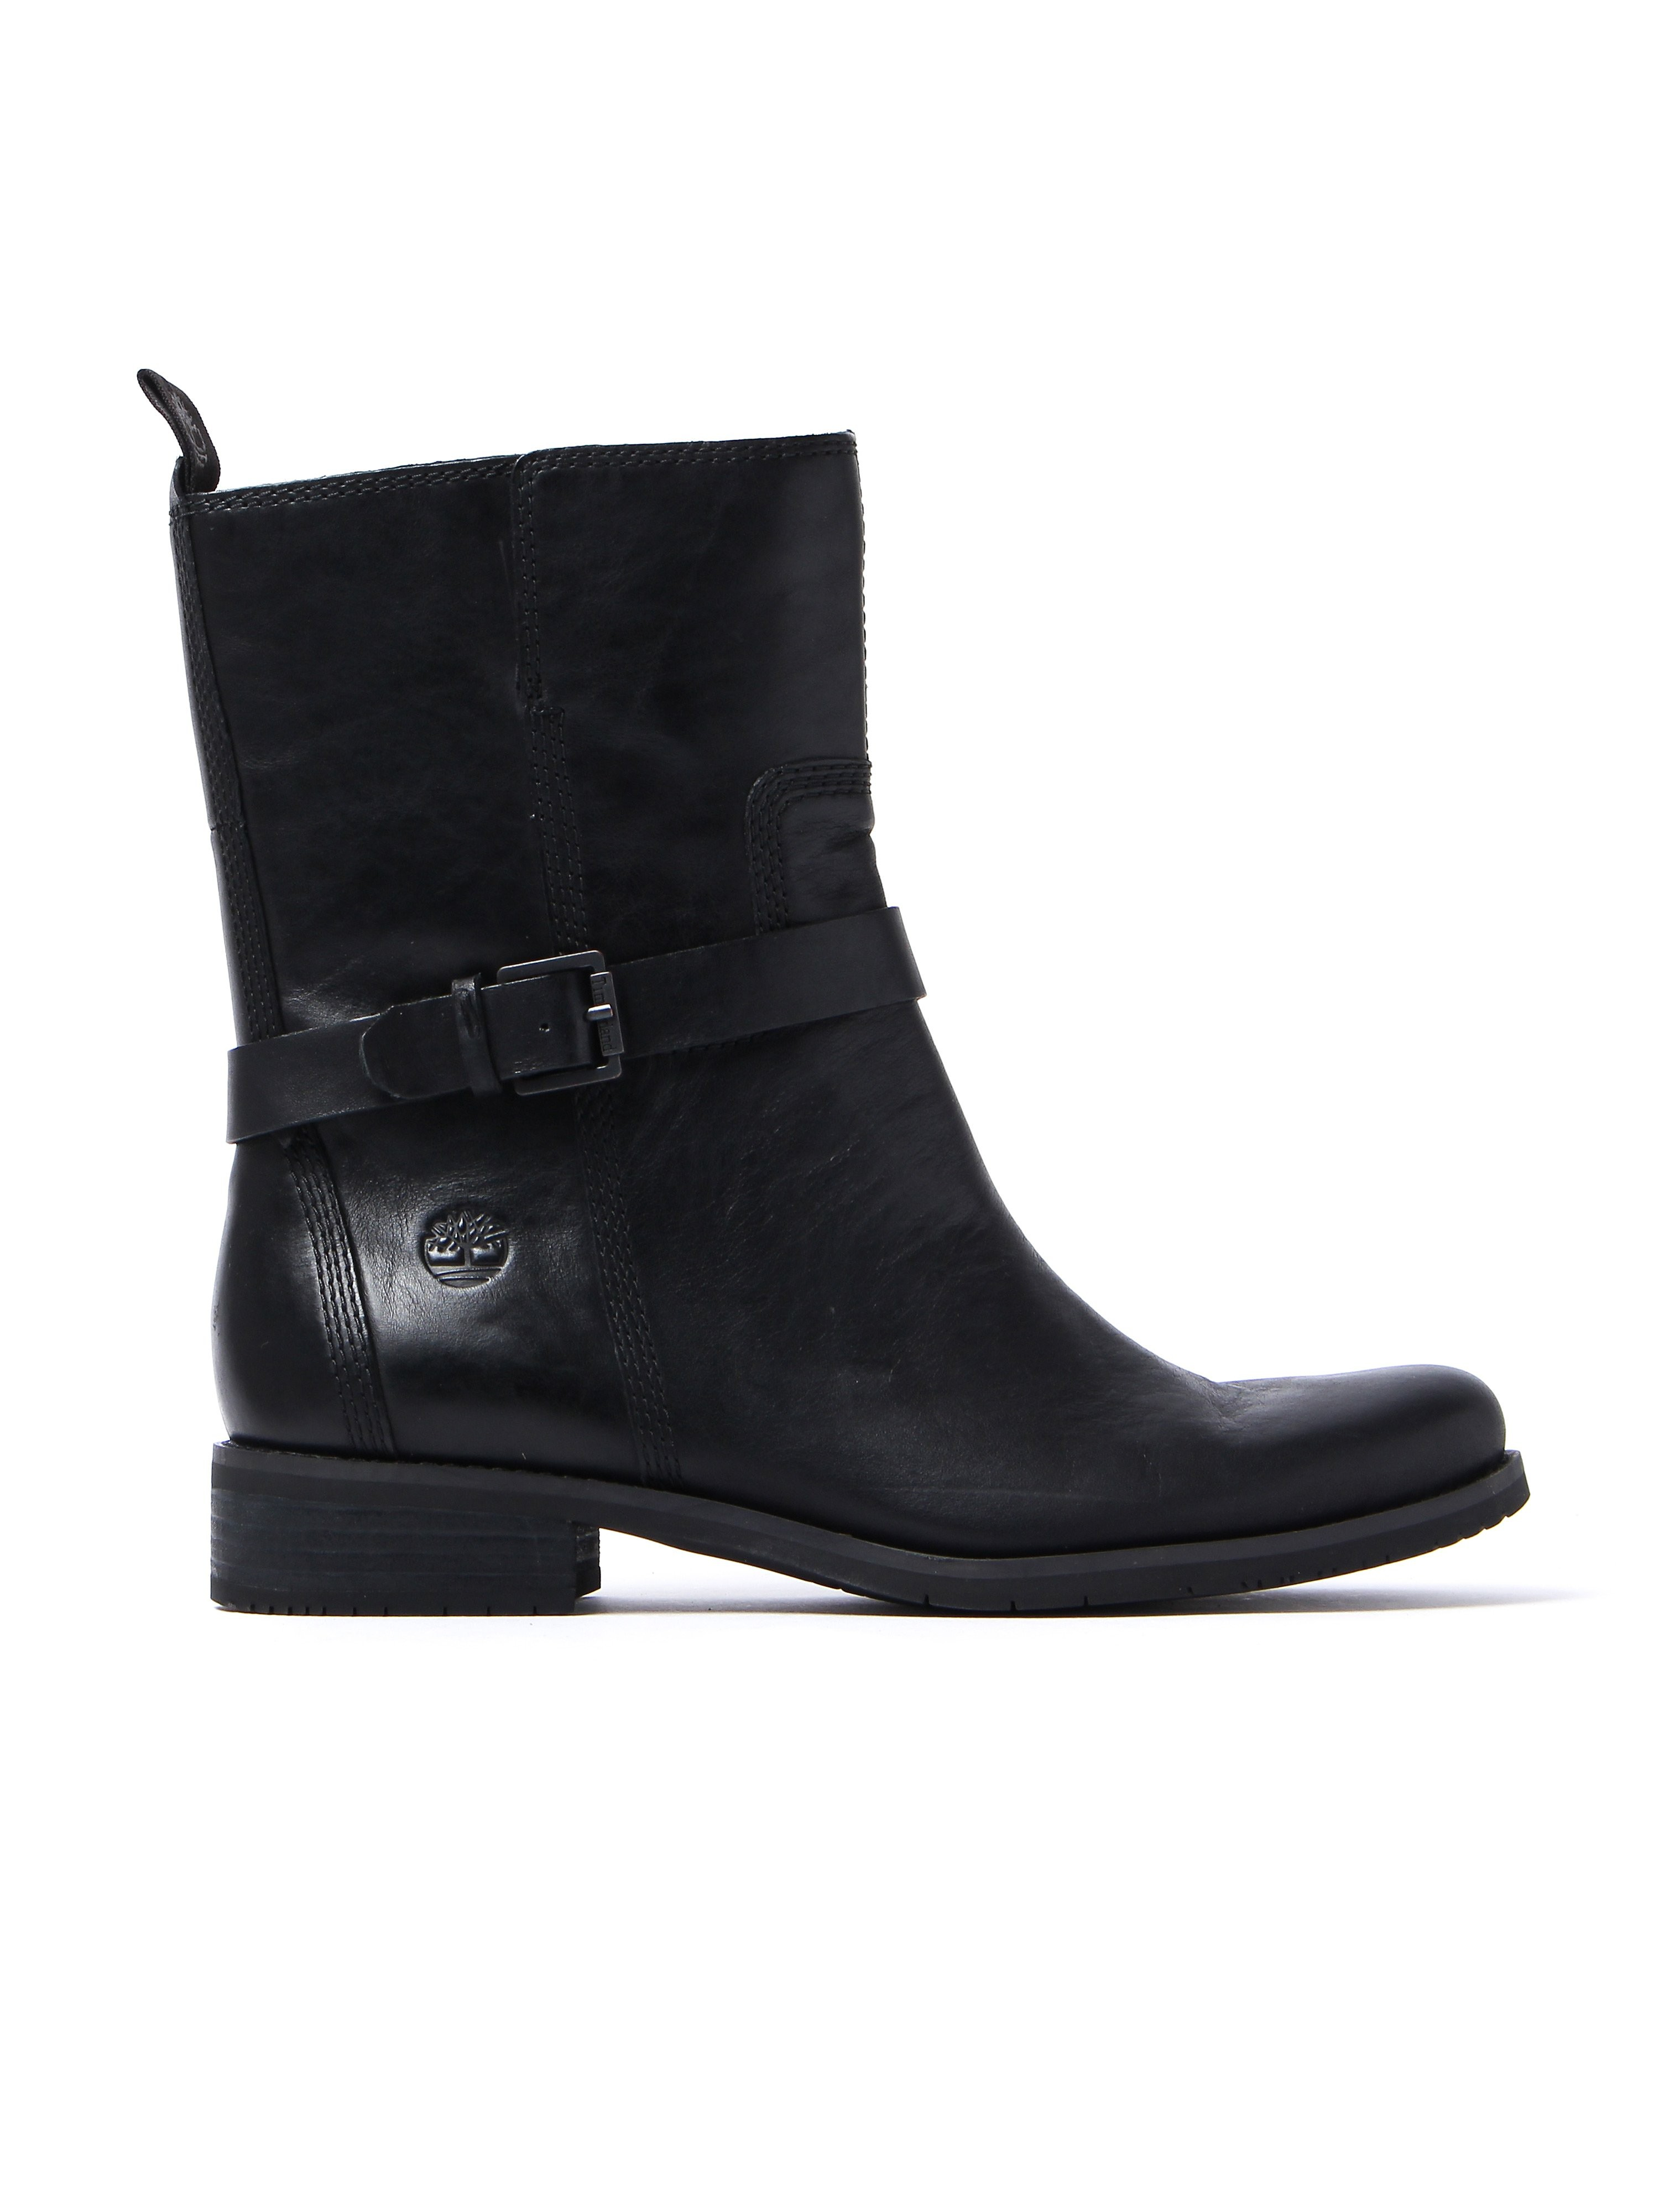 Timberland Women's Venice Park Biker Boots – Black Leather